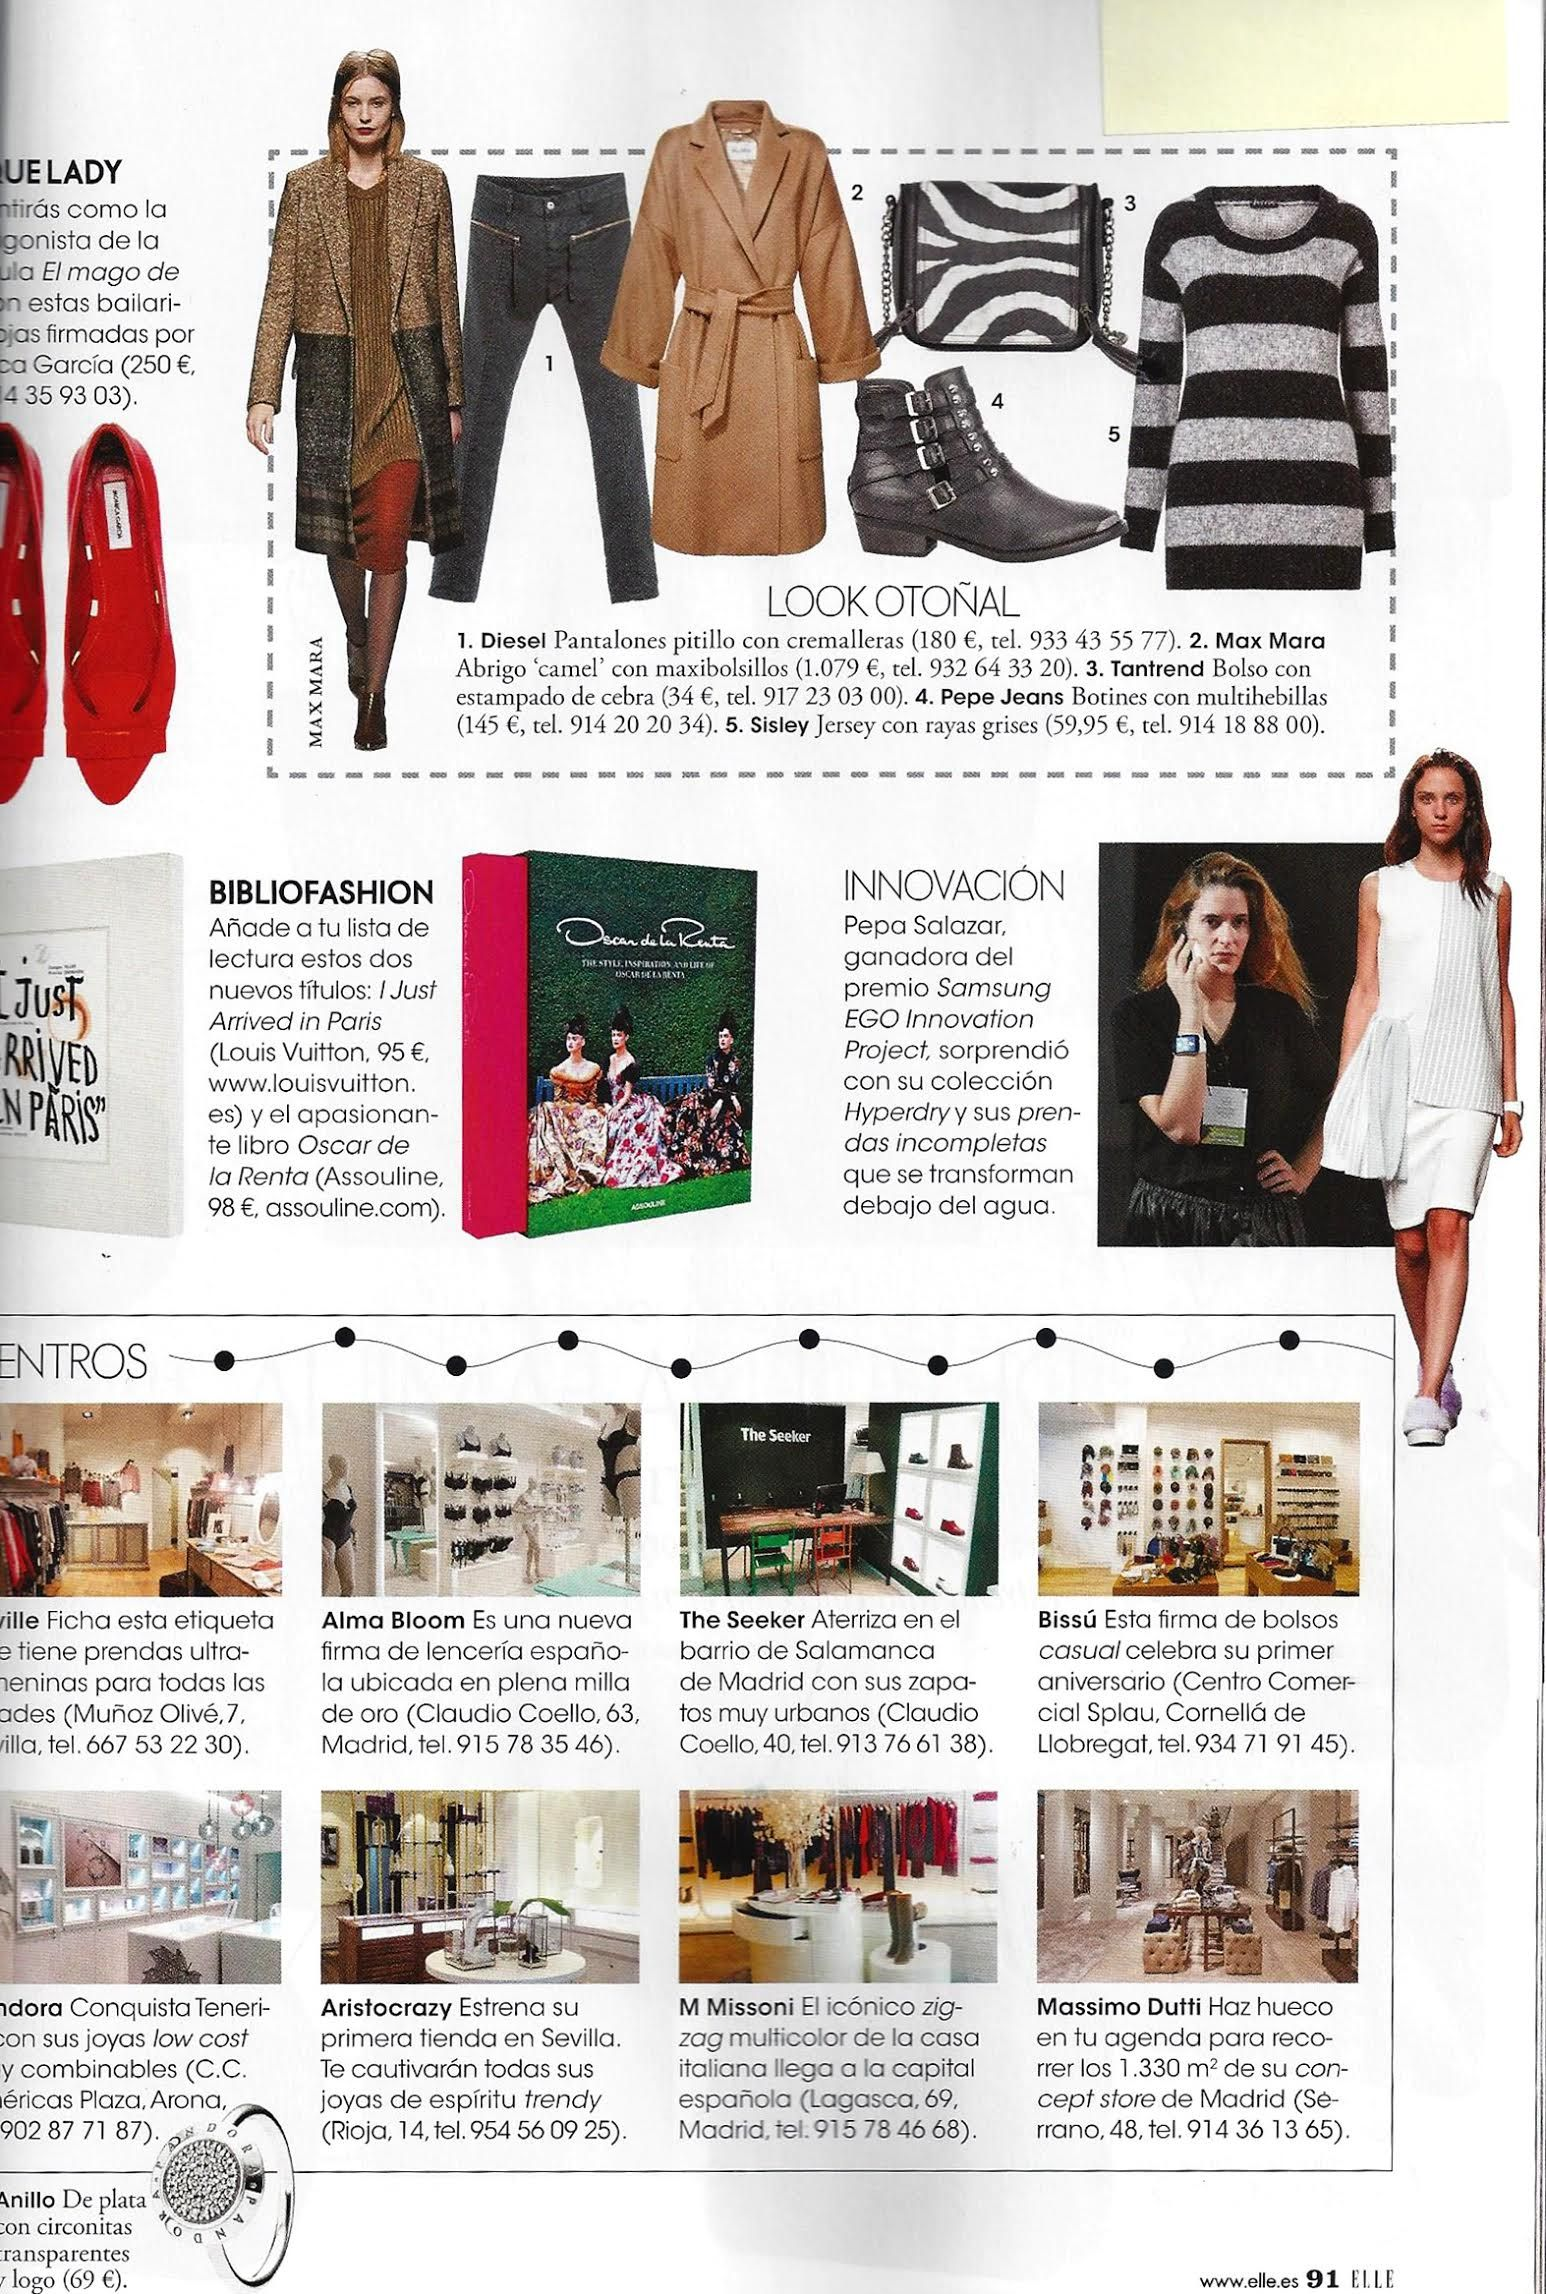 Spain clipping in Elle magazine.  The Seeker